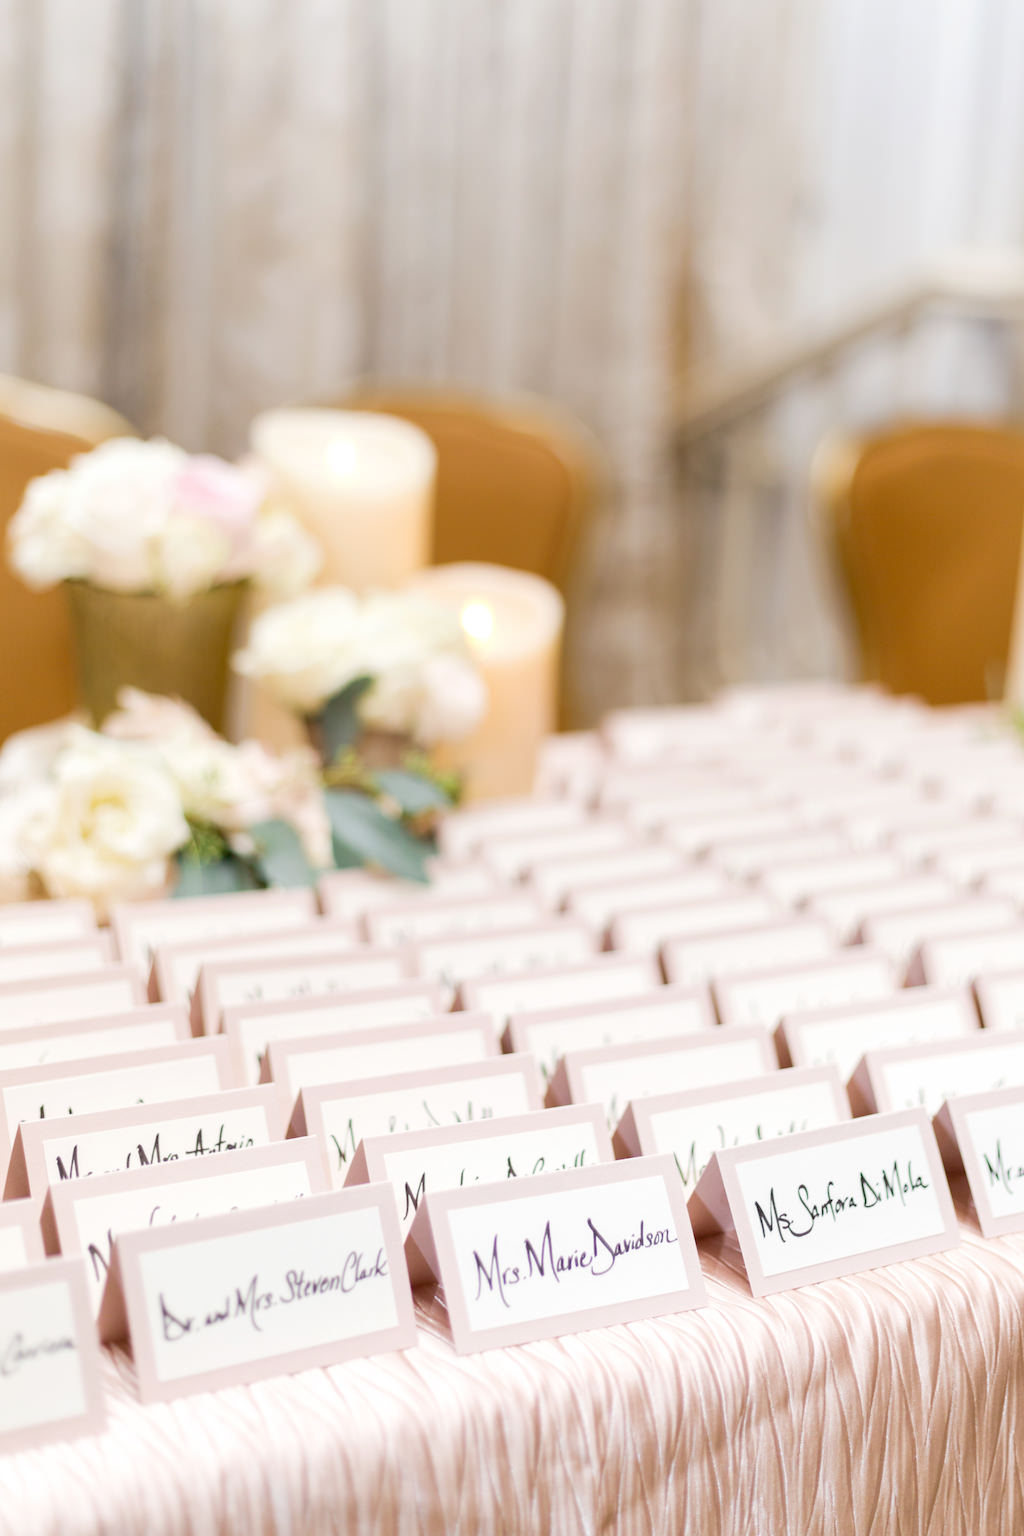 Traditional Wedding Name Escort Place Cards on White and Blush Pink Cardstock with Black Calligraphy Text